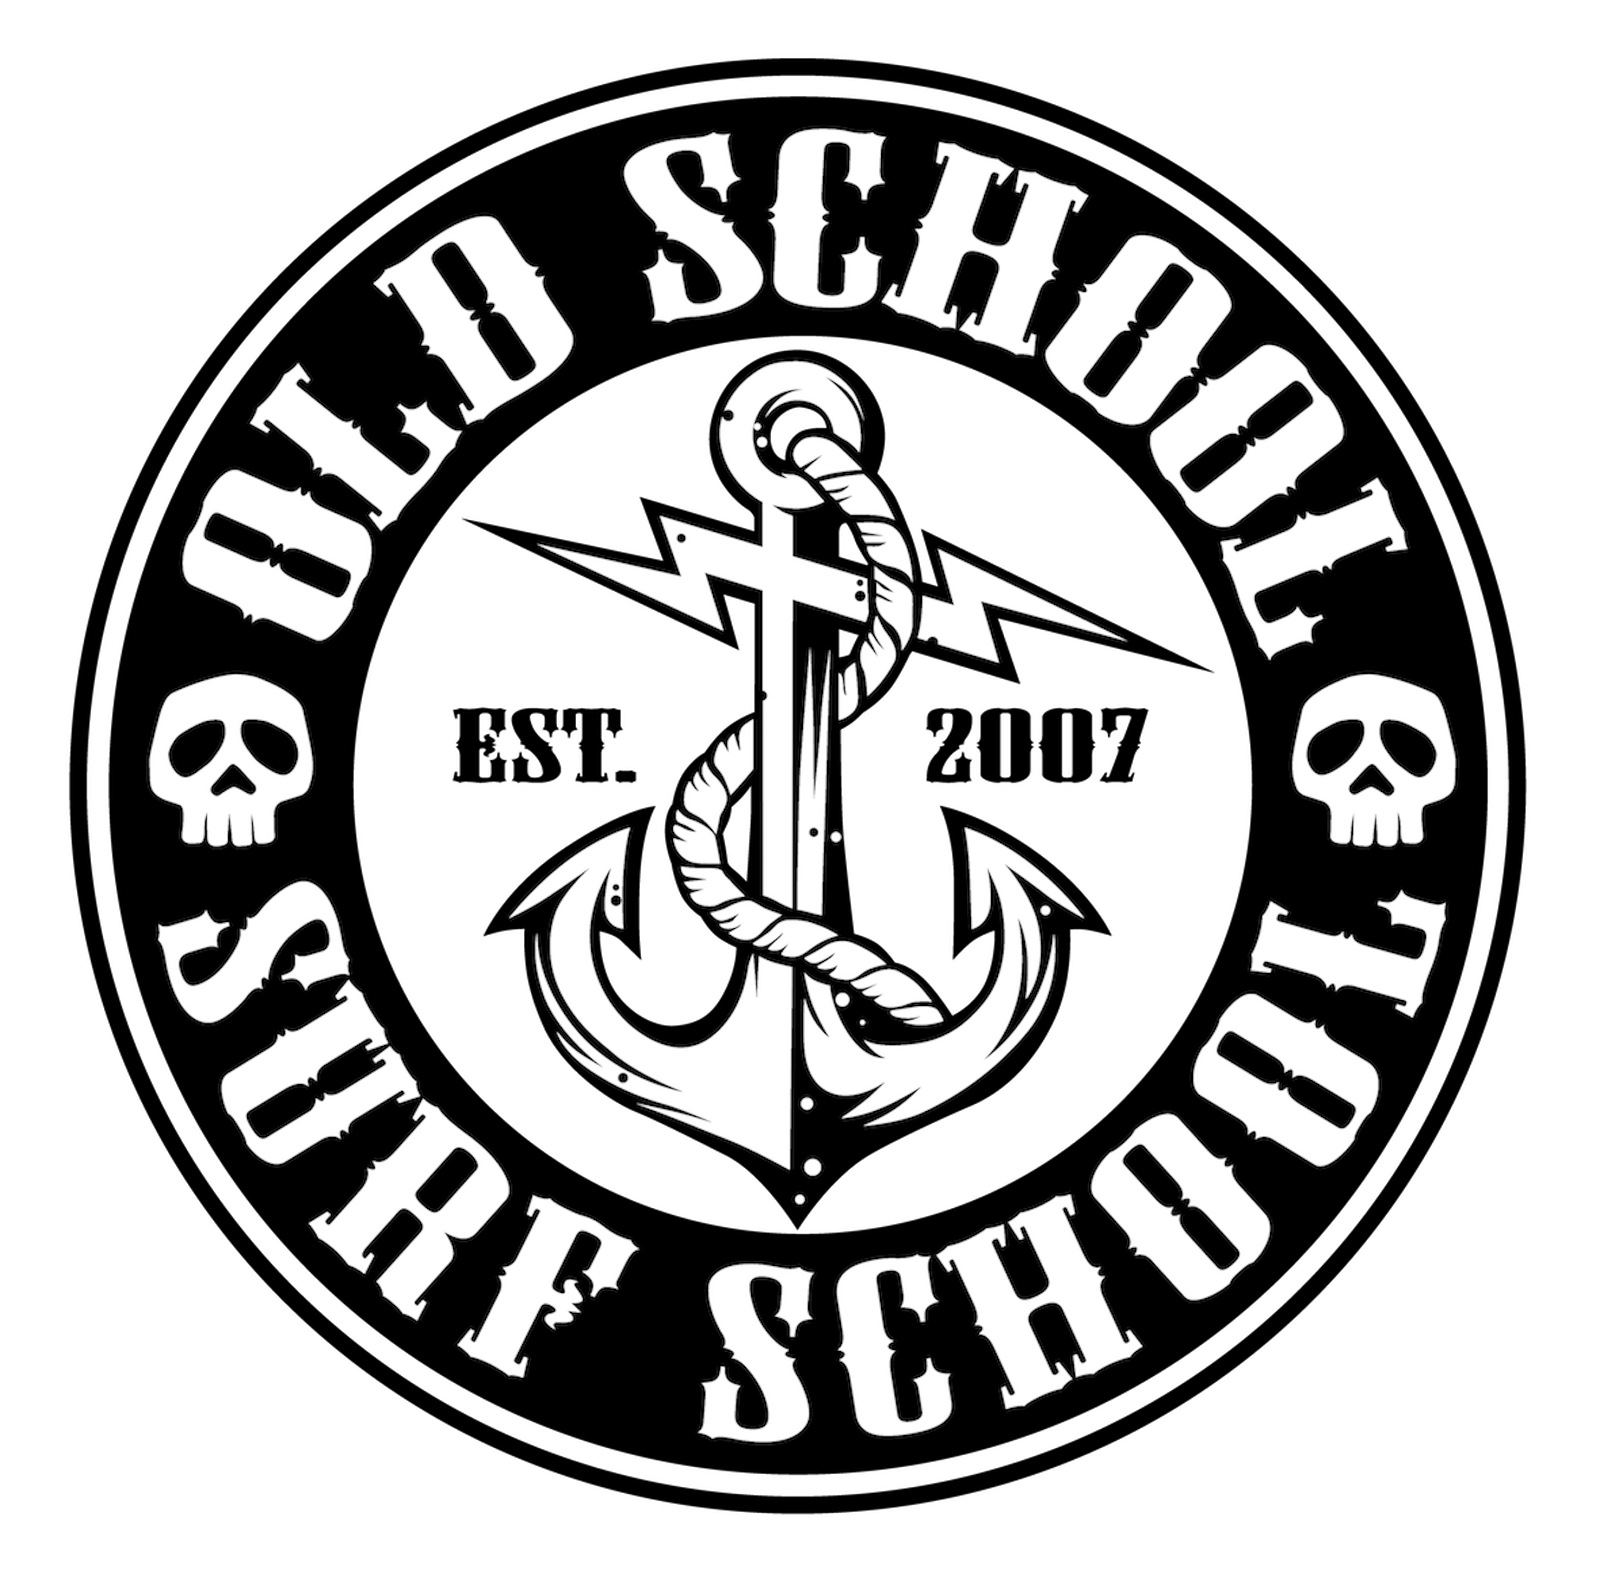 Old School Surf School